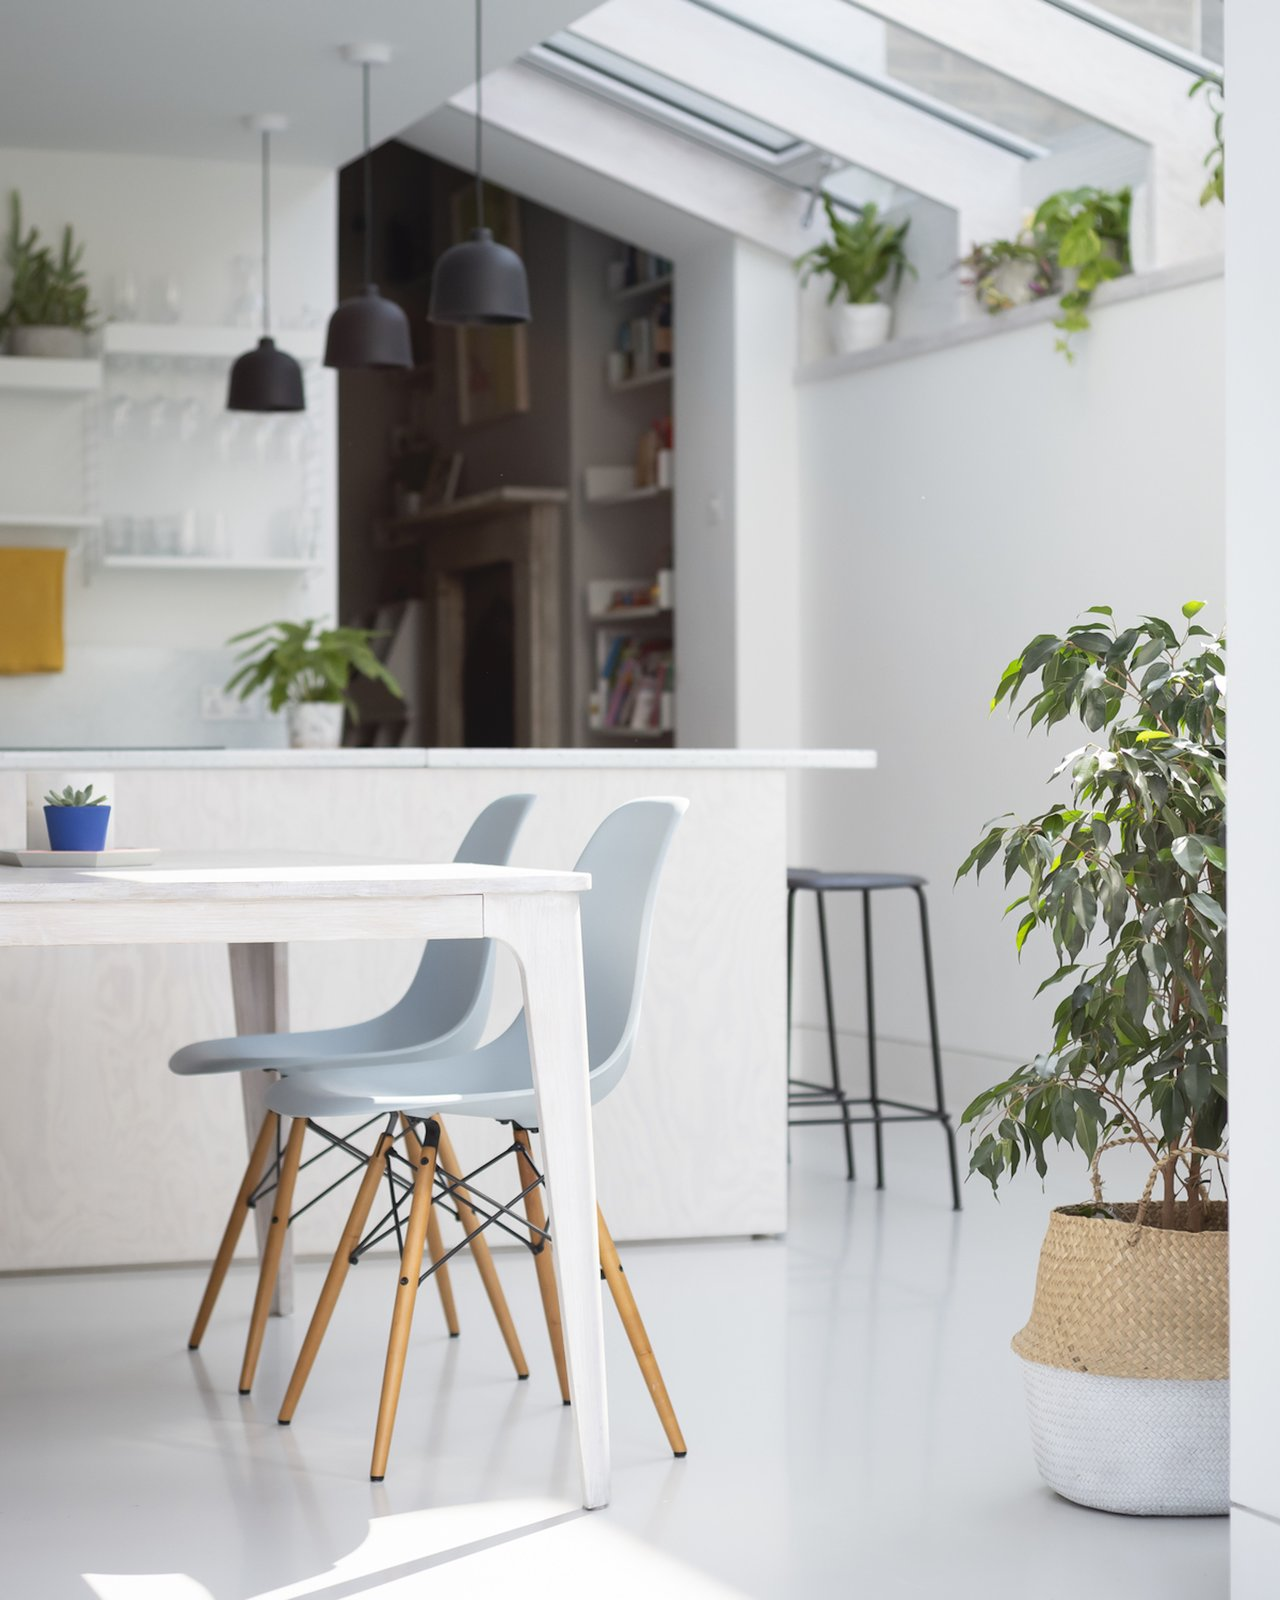 The dining and kitchen space in A Brockley Side by CAN.